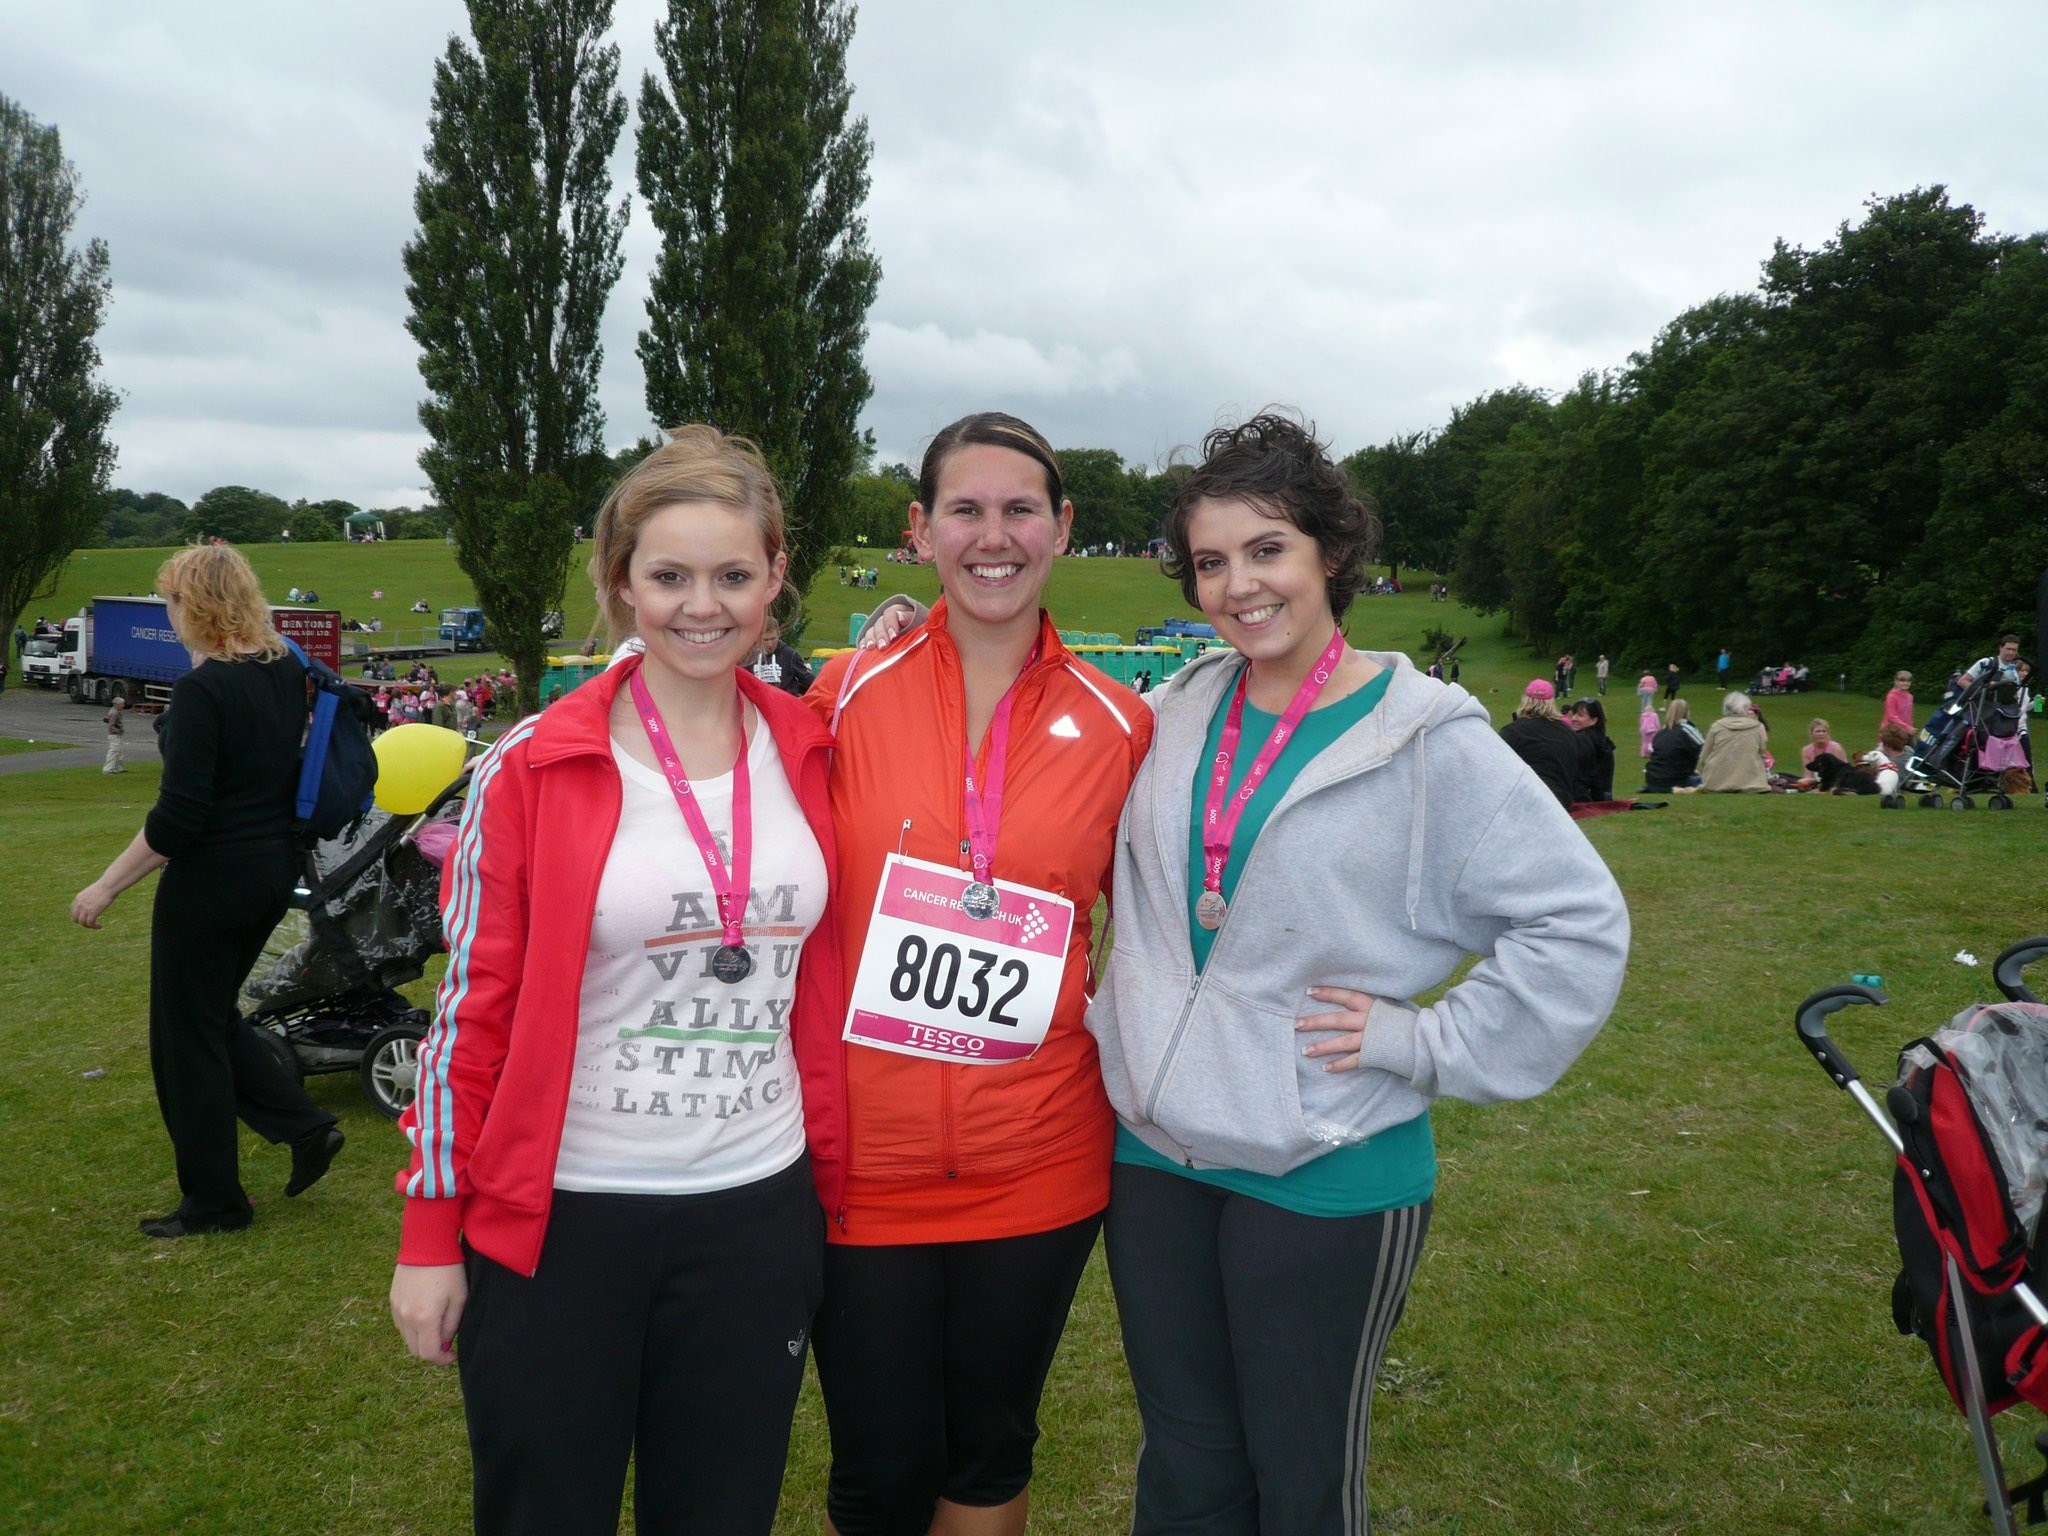 Anja Completing the Race for Life with her two sisters